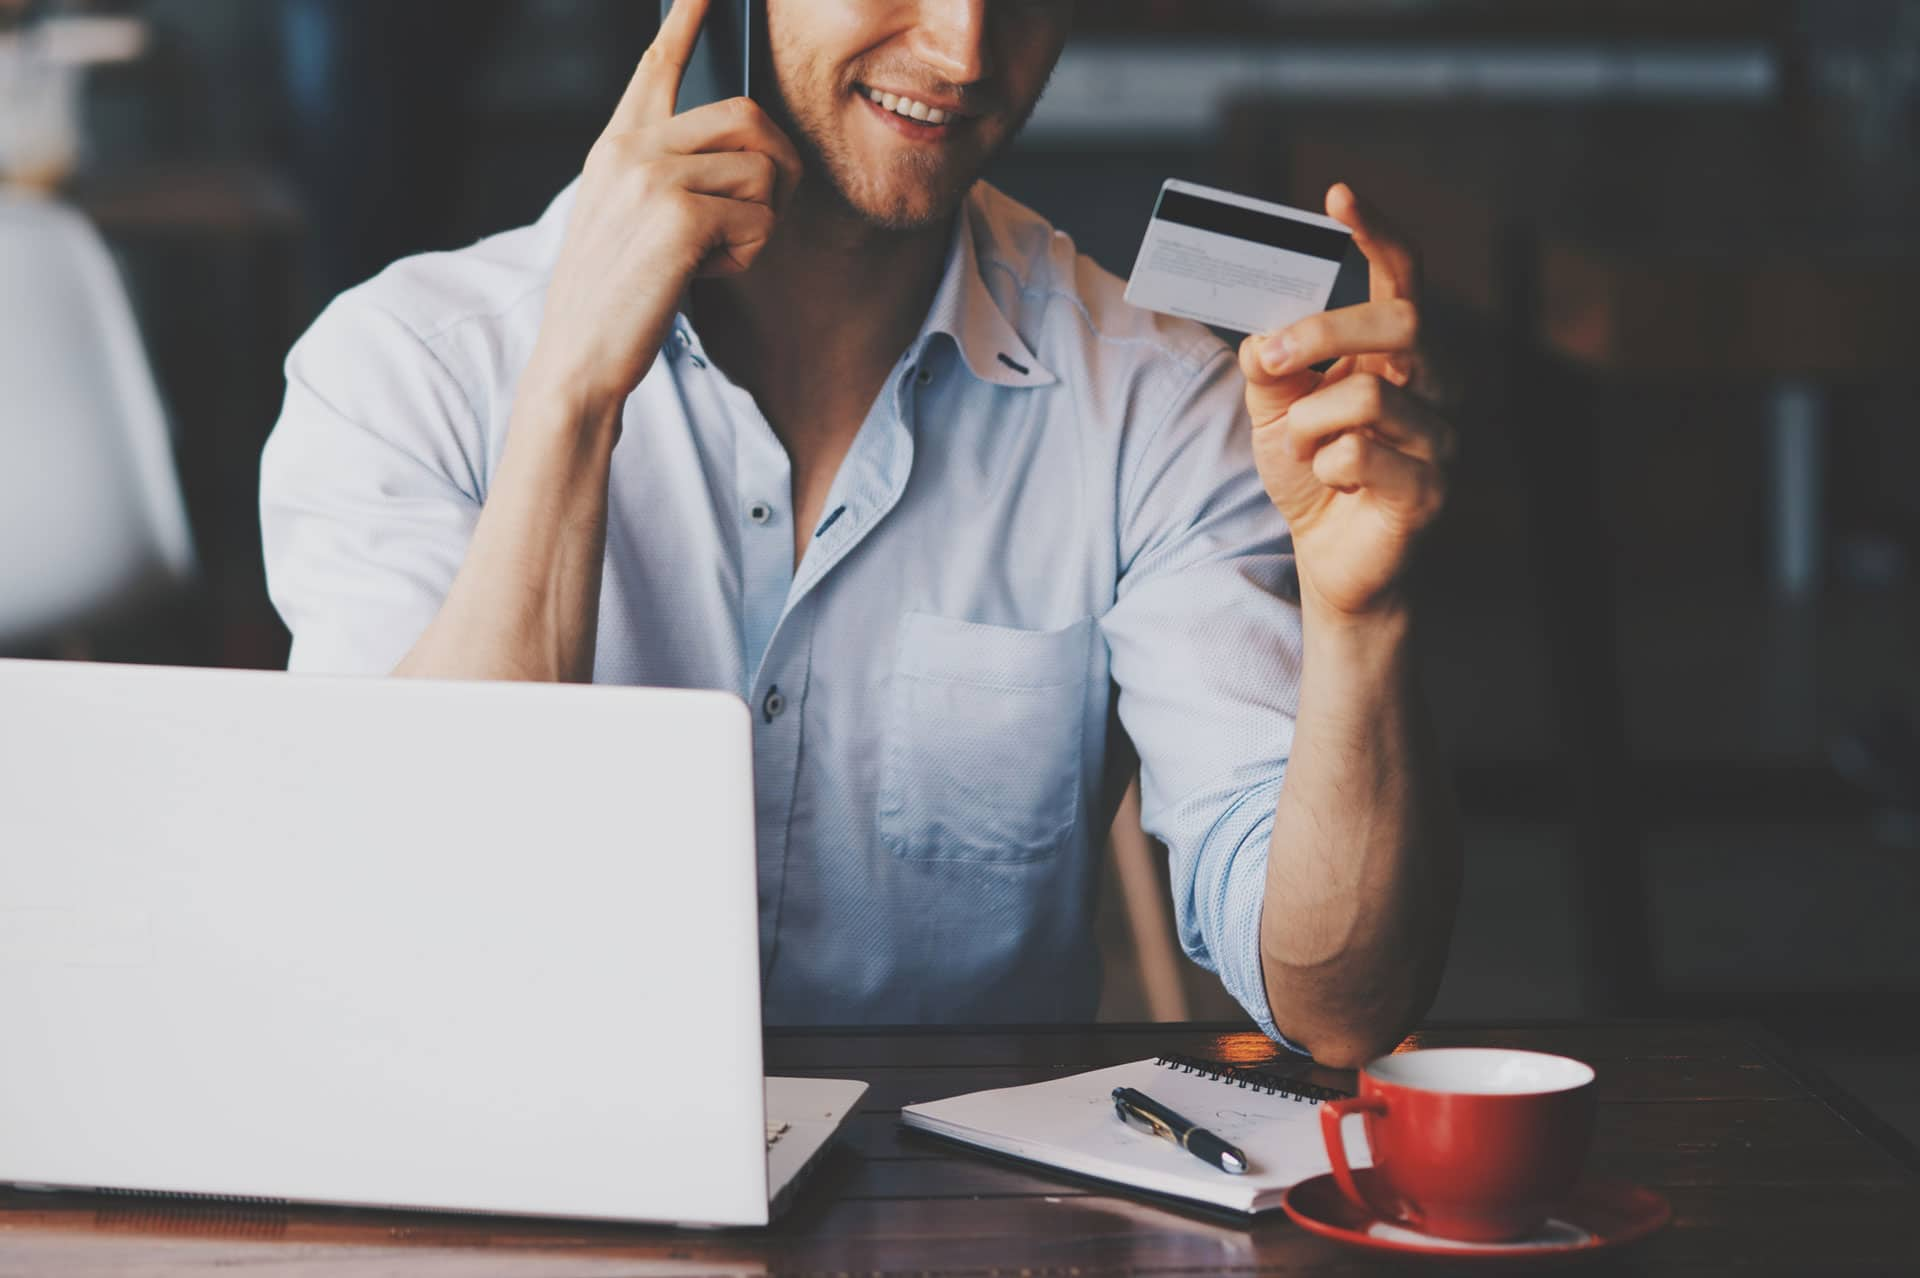 Man sitting at desk with laptop, notebook, pen, red coffee cup in front. He is on phone and holding credit card, smiling